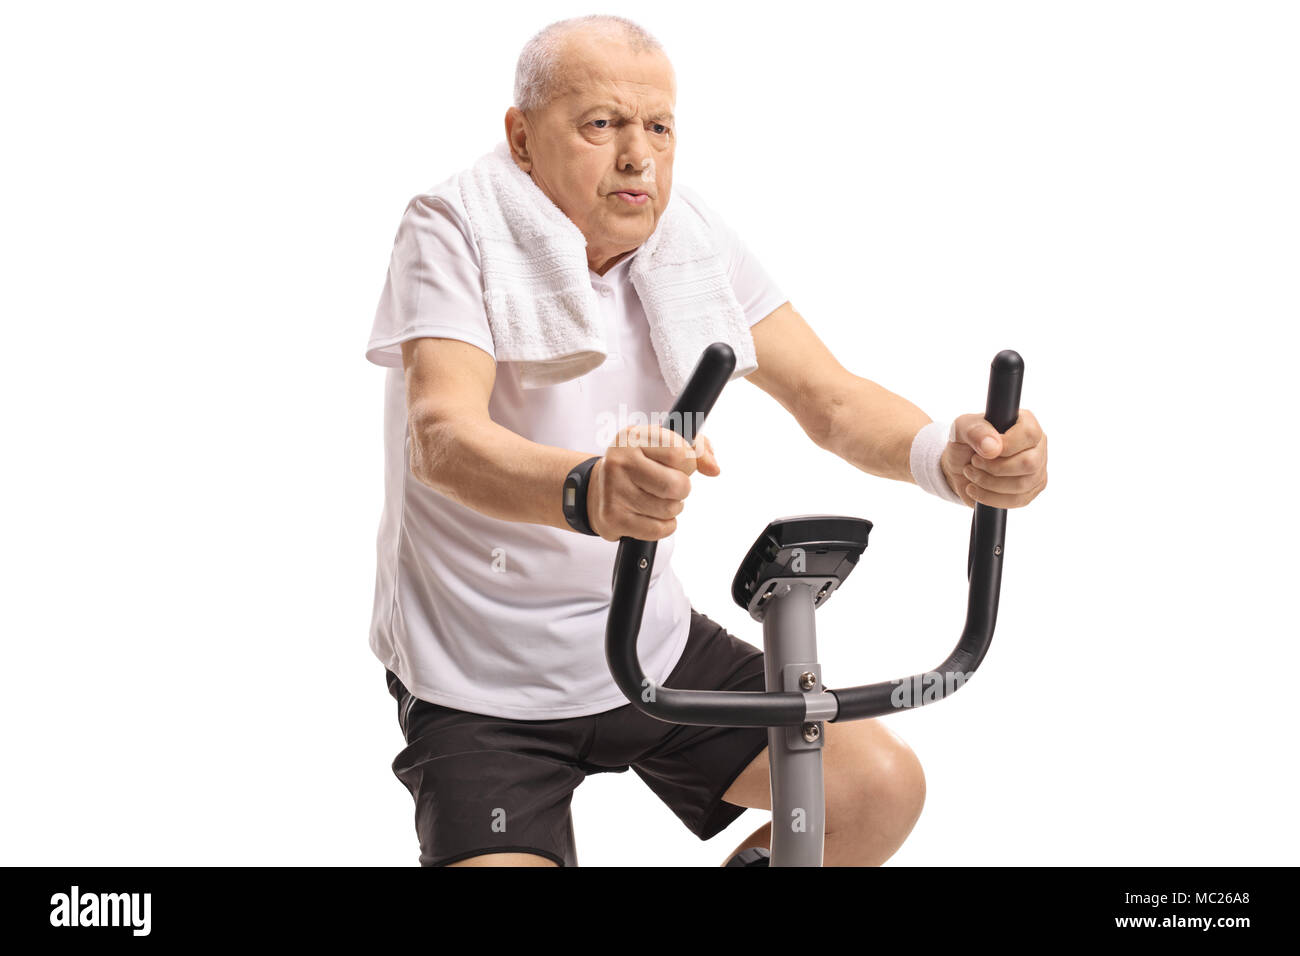 Tired mature man working out on an exercise bike isolated on white background - Stock Image